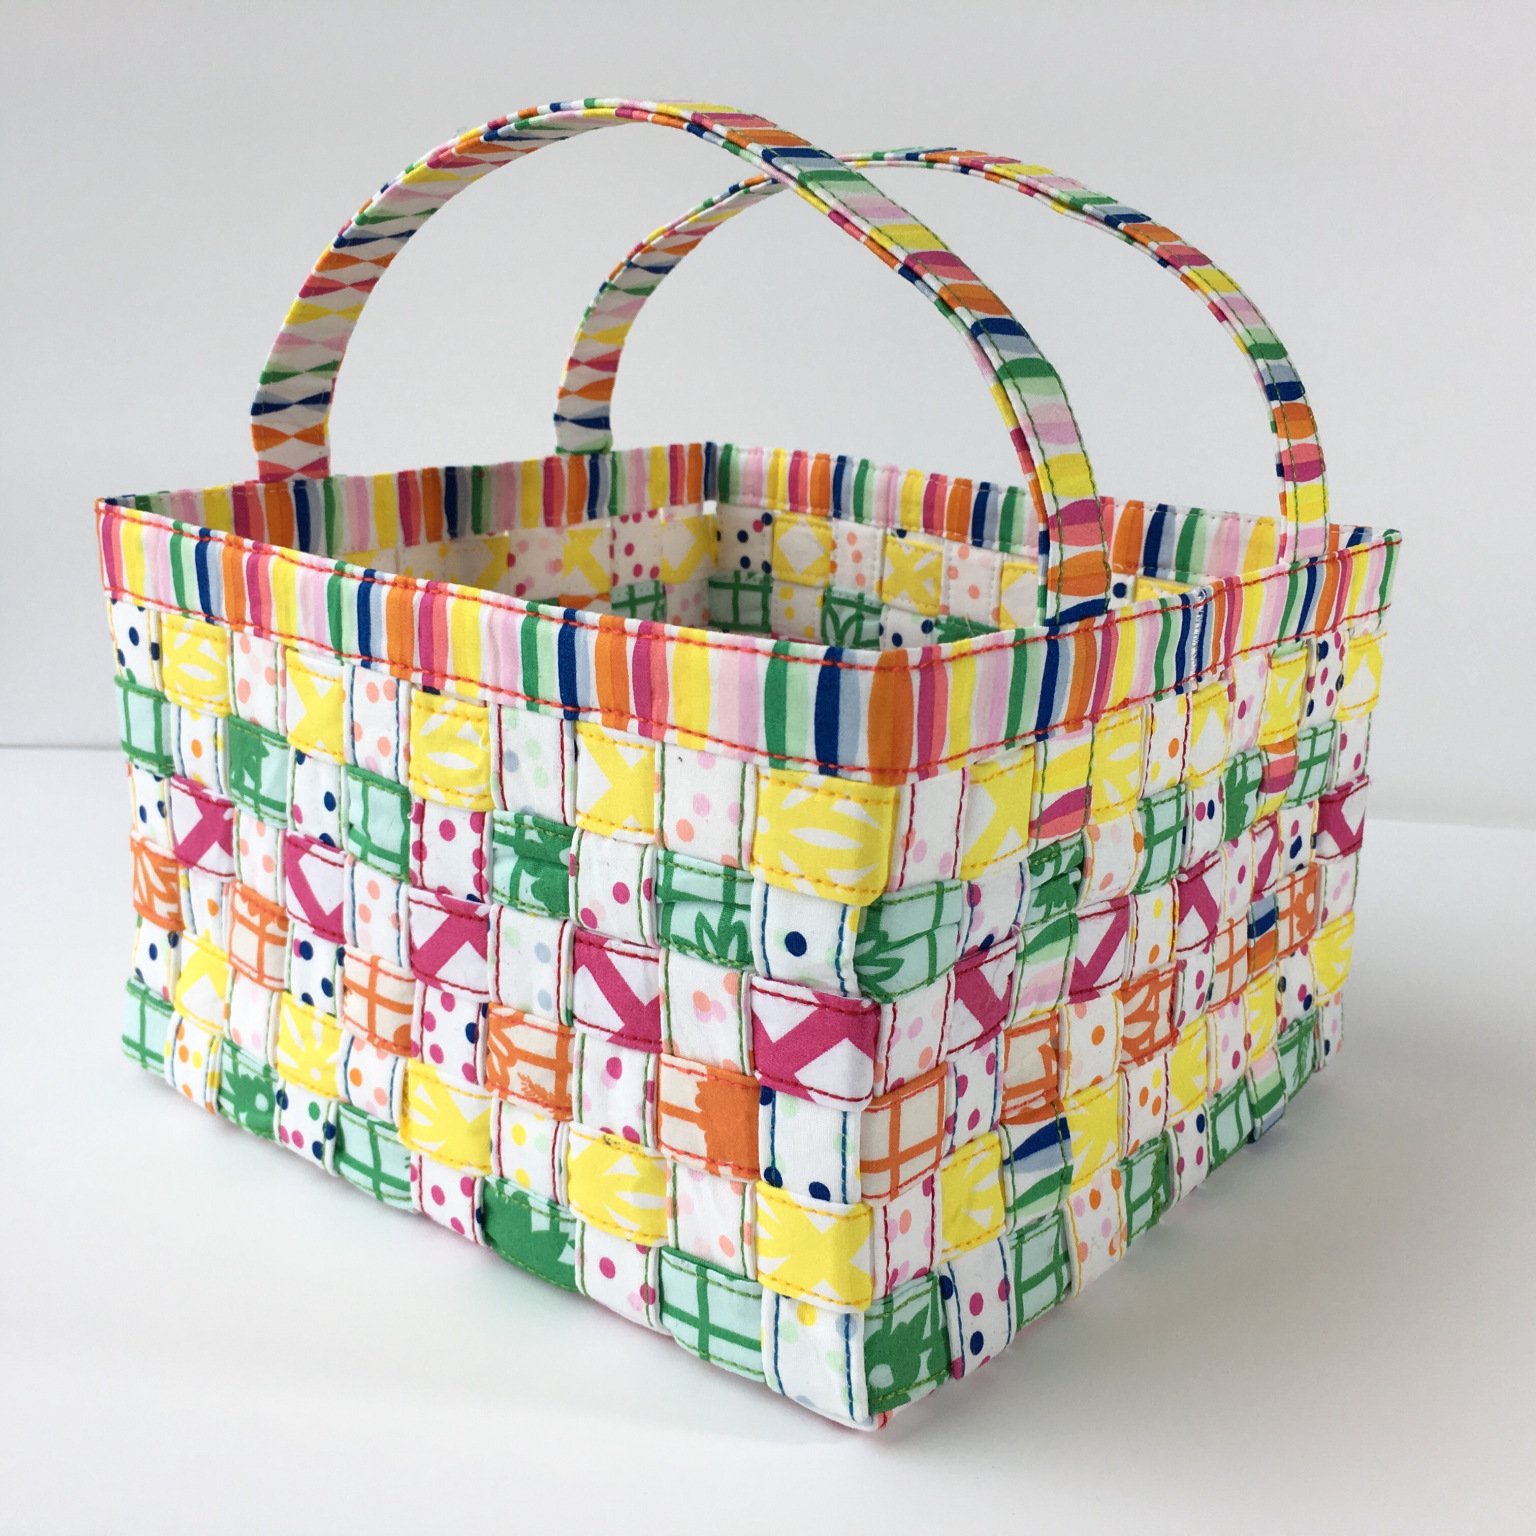 woven easter basket tutorial from Mister Domestic | Fiesta Fun fabric collection designed by Dana Willard for Art Gallery Fabrics